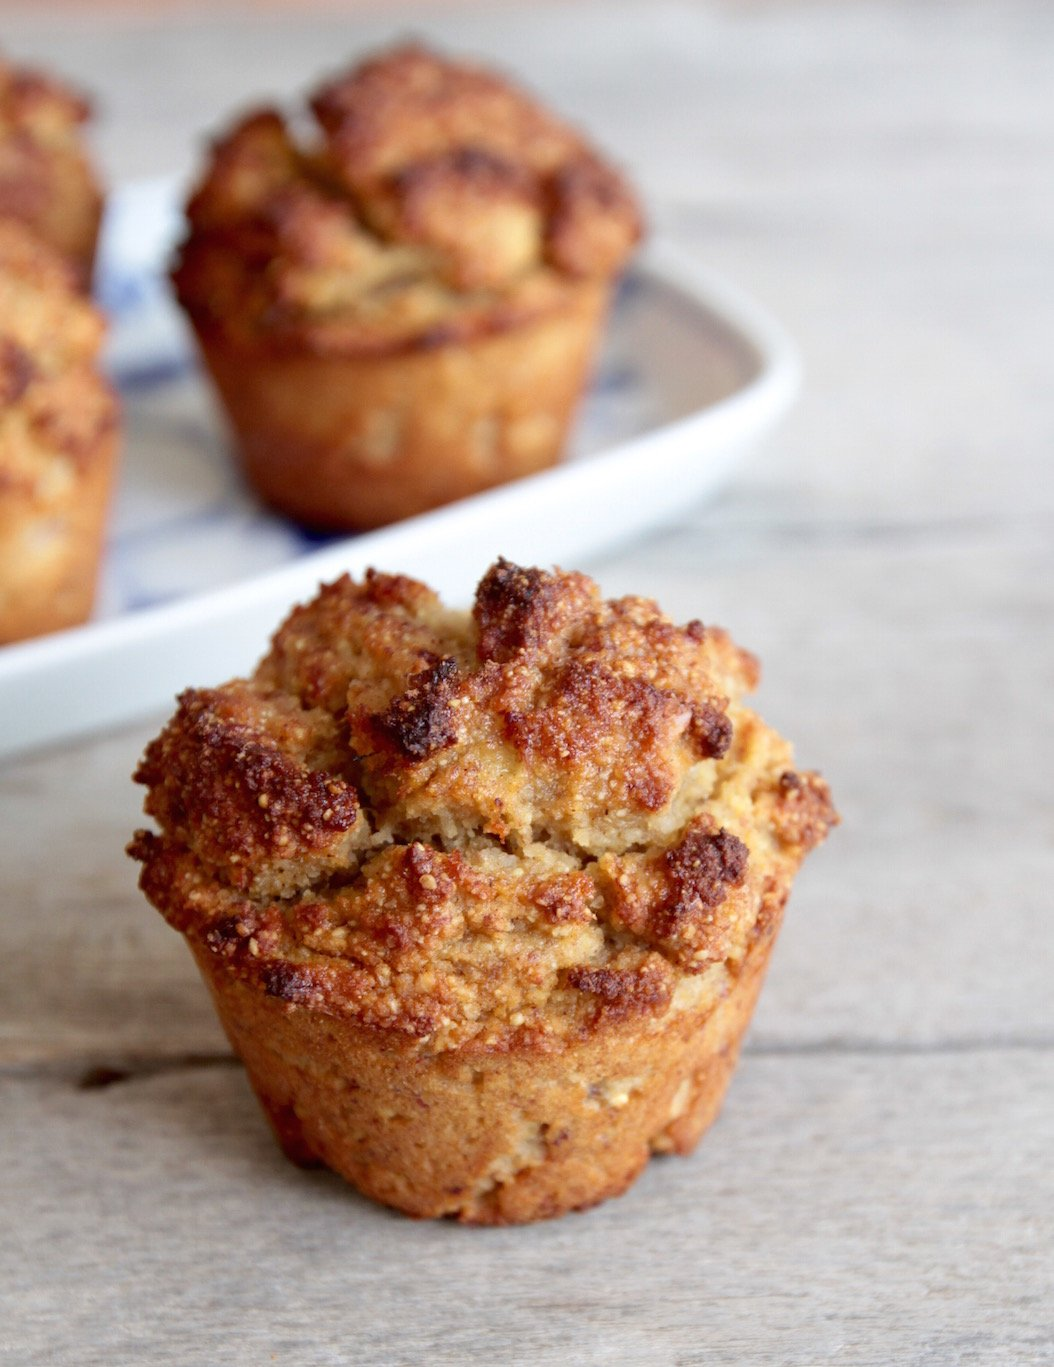 Banana muffin by Tanja Ting-Pure Goodness